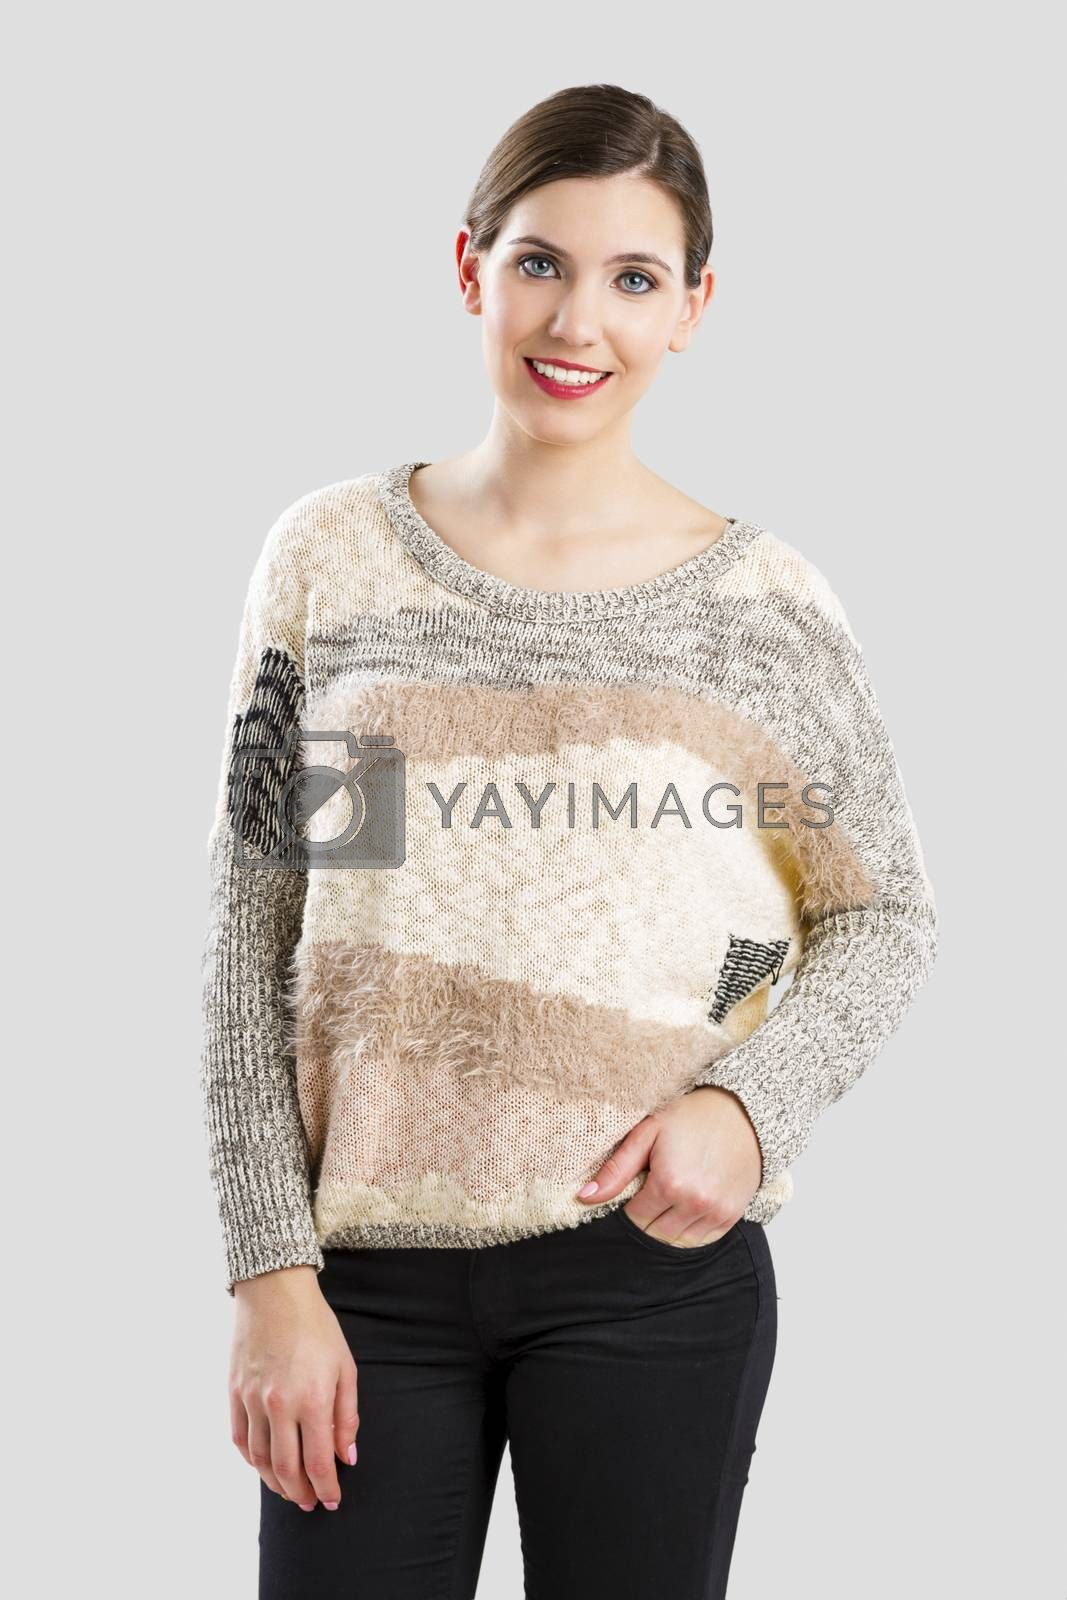 Beautiful woman smiling, isolated over a grey background